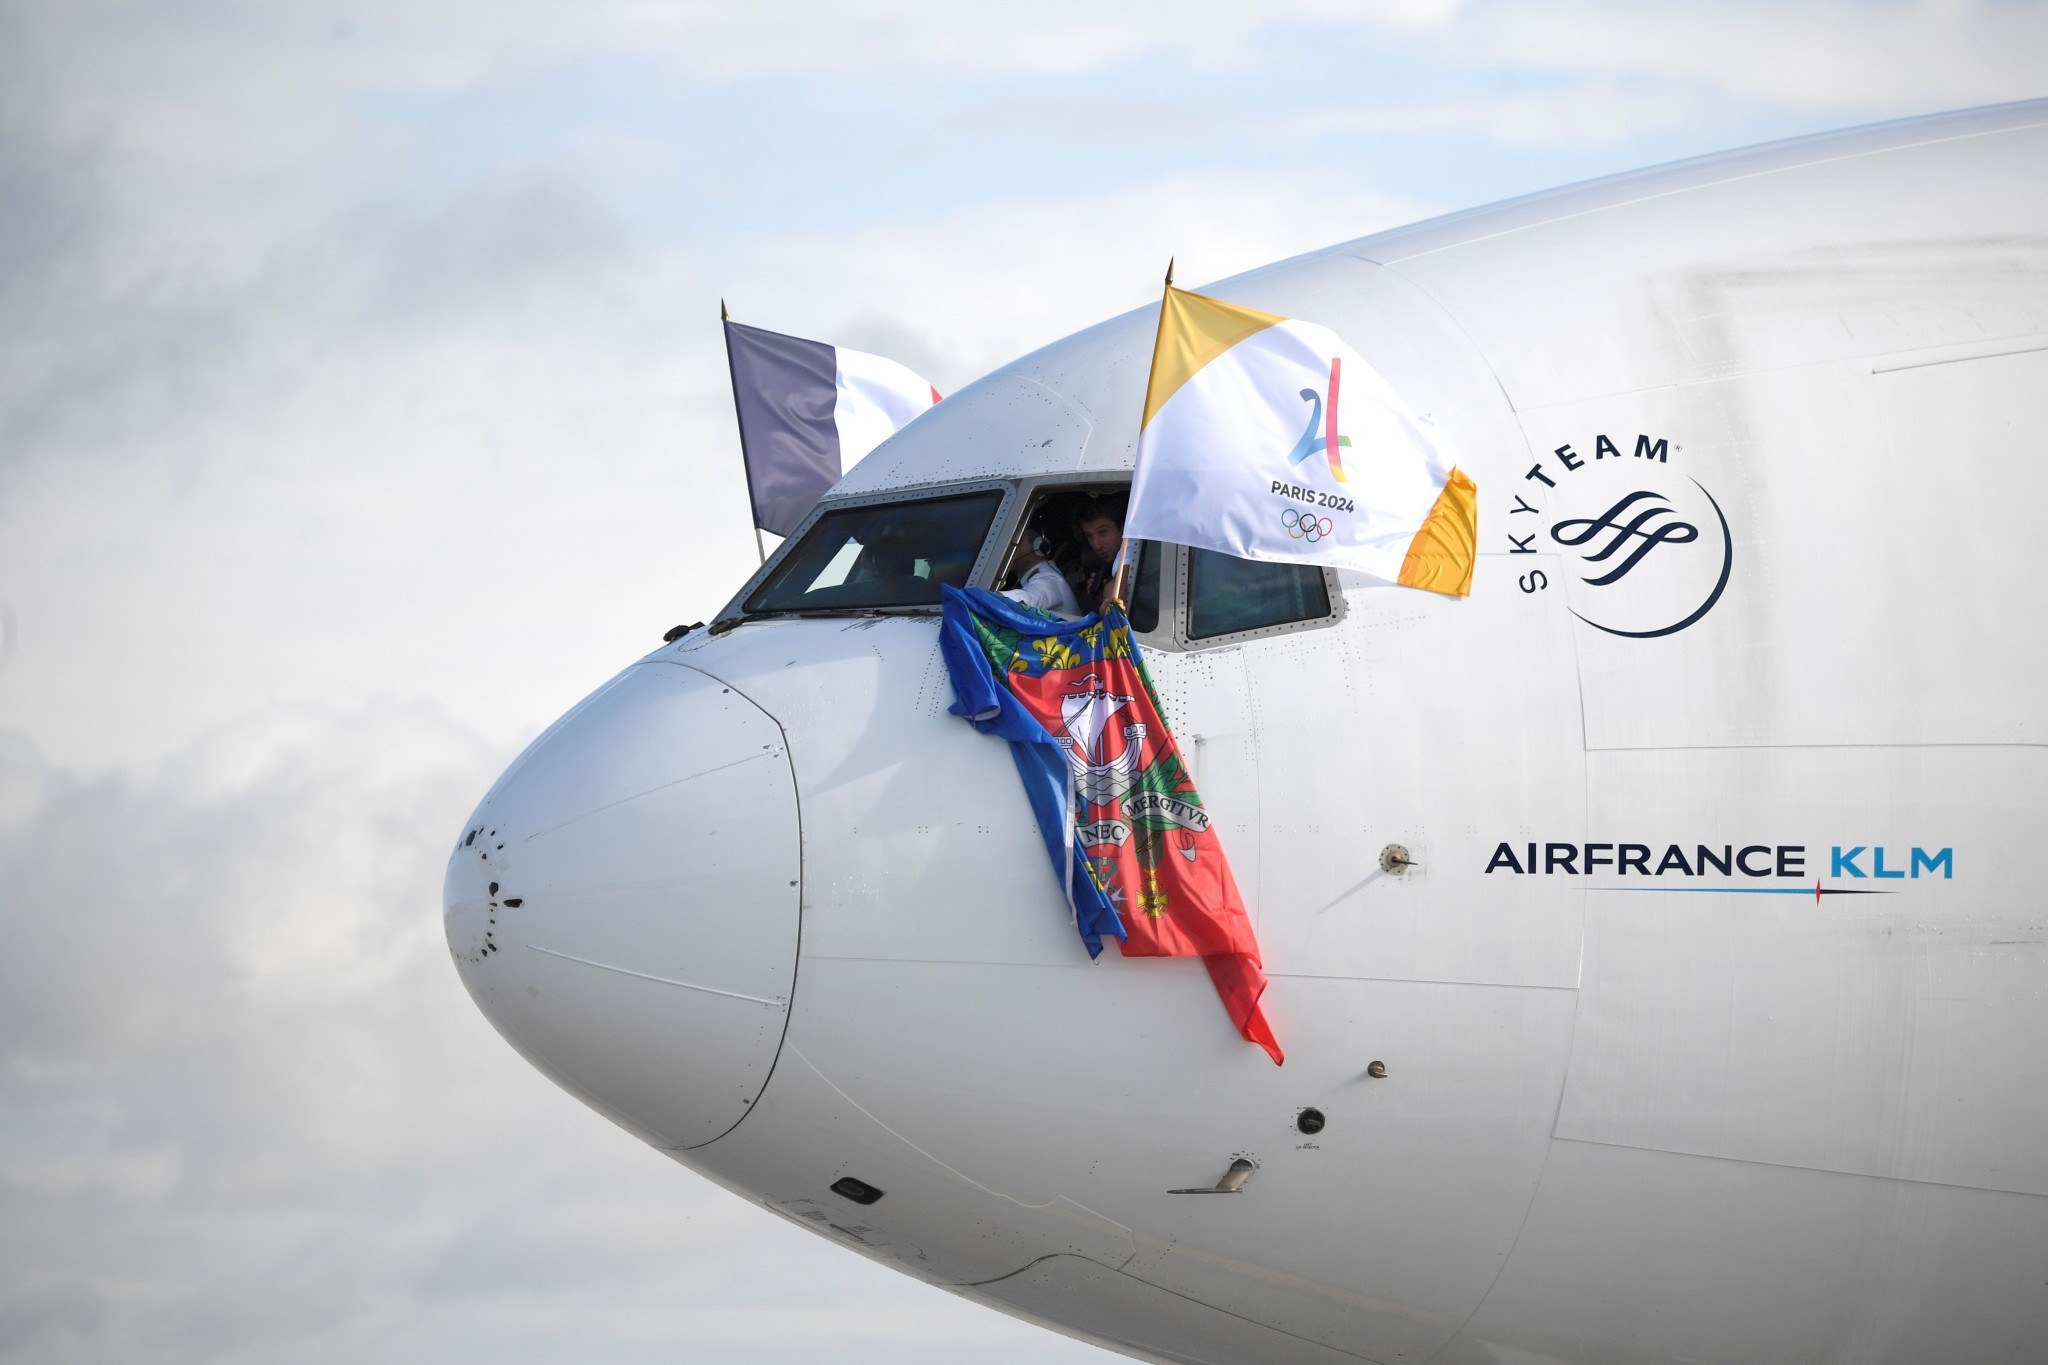 Paris 2024 arrived home to France in a special charter flight from Lima ©Getty Images